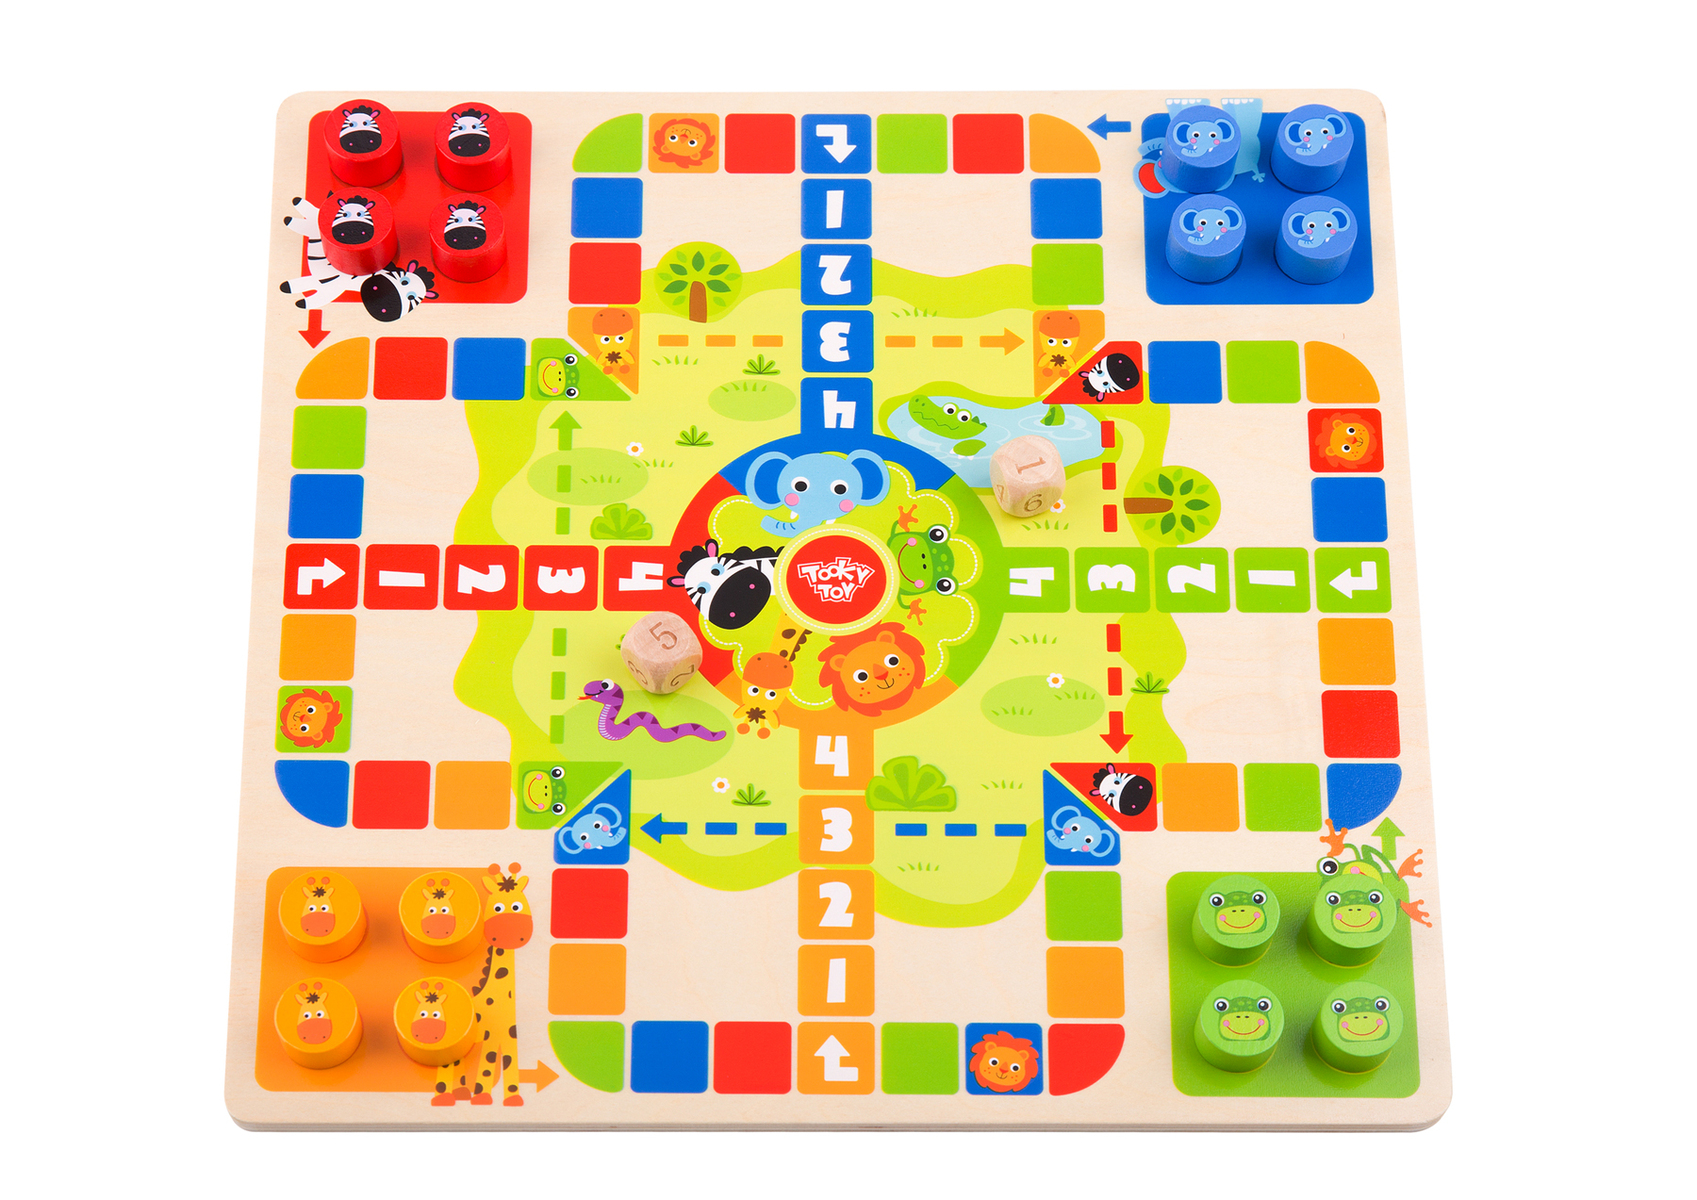 2 in 1 Wooden Board Game - Ludo Game, Snakes and Ladders Game 3+ BY Tooky Toys